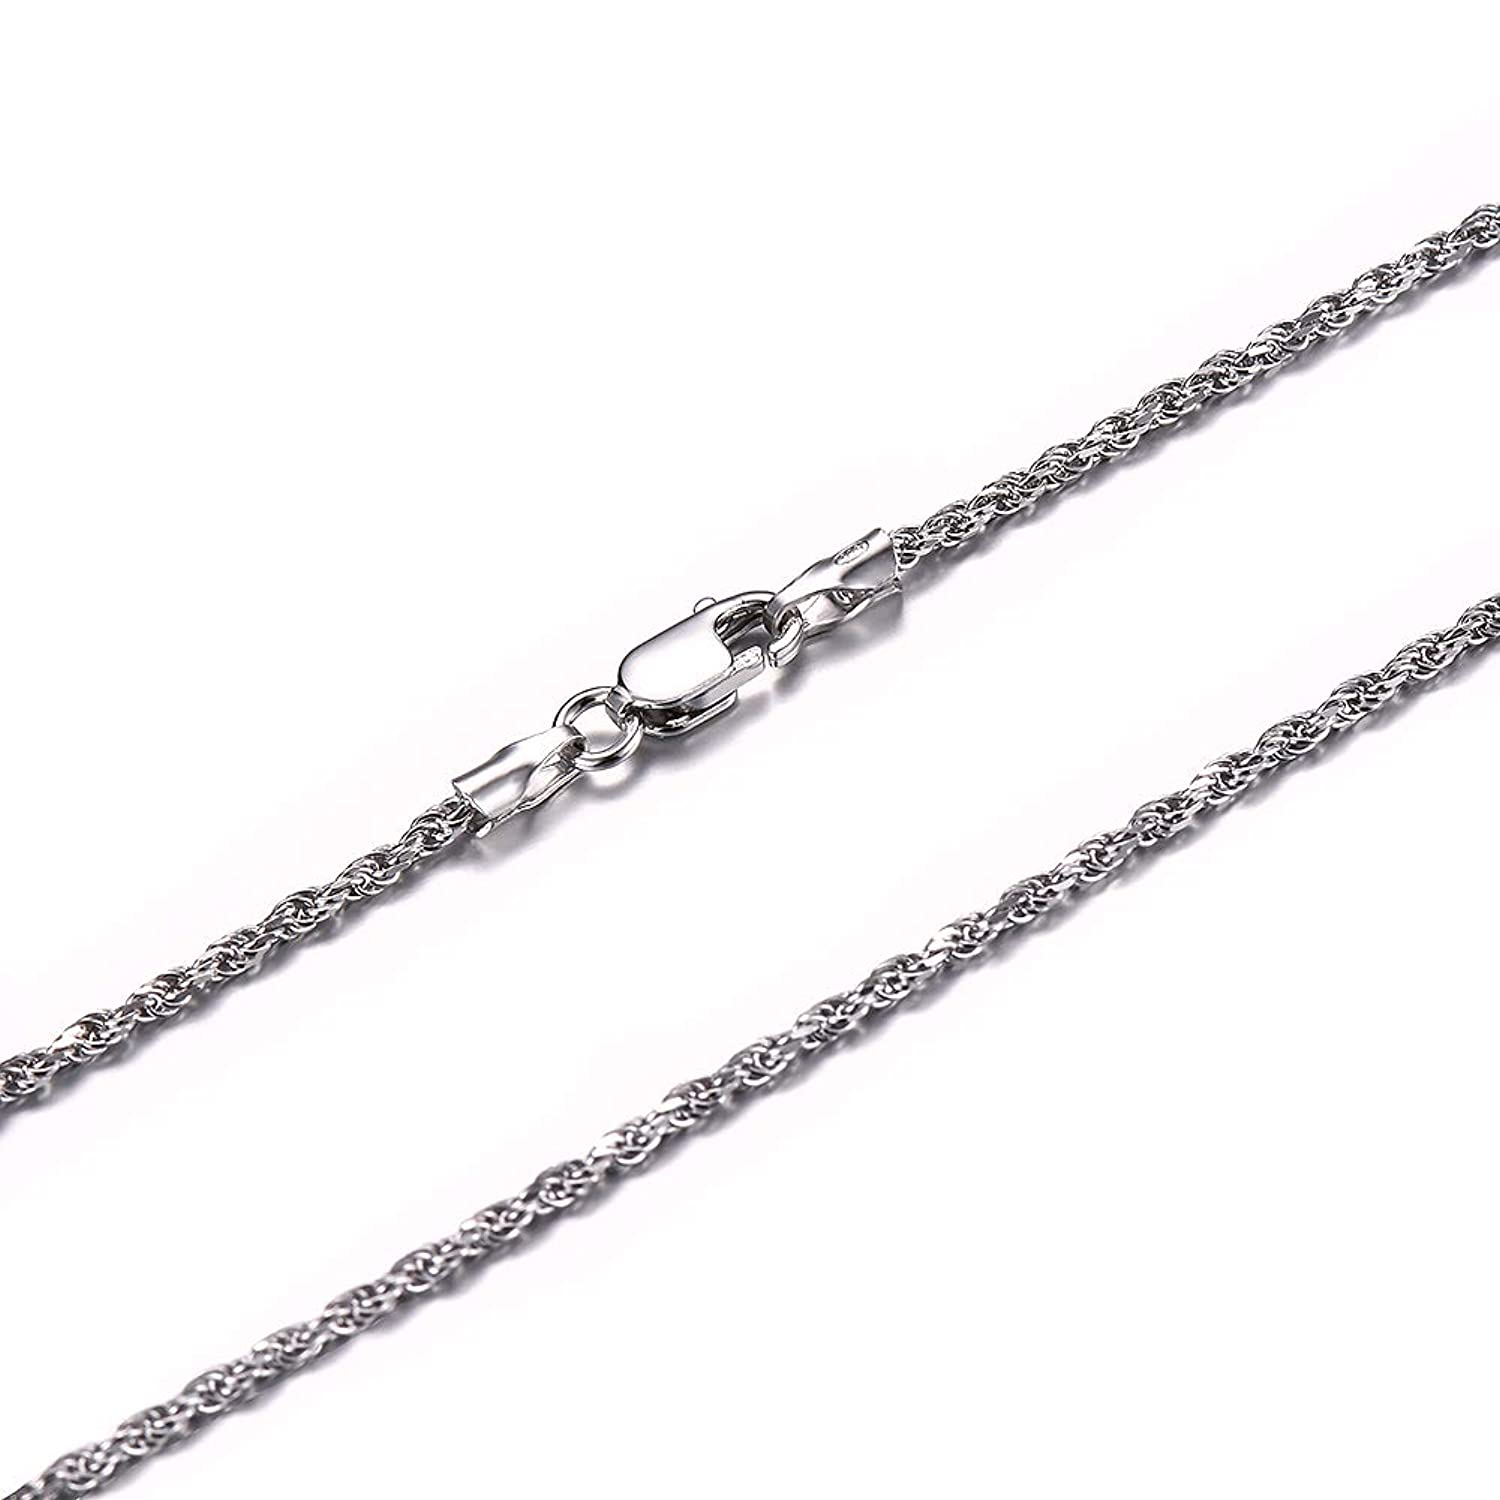 Solid 925 Sterling Silver 1.7mm Italian Diamond Cut Twisted Rope Chain Necklace